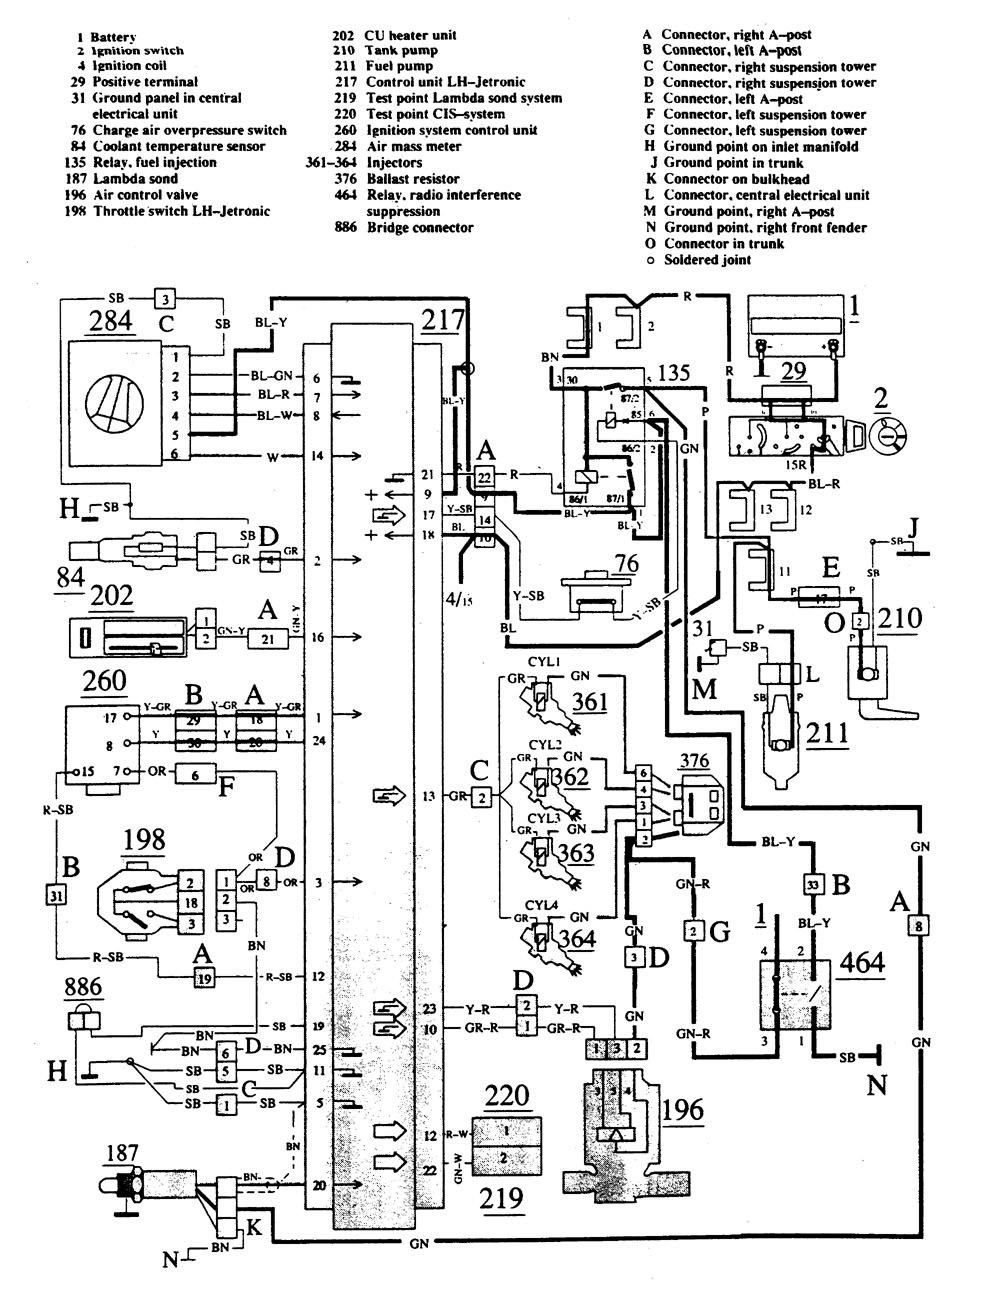 hight resolution of 220d volvo fuel pump wiring diagram wiring diagram g11 volvo vn wiring diagram 220d volvo fuel pump wiring diagram